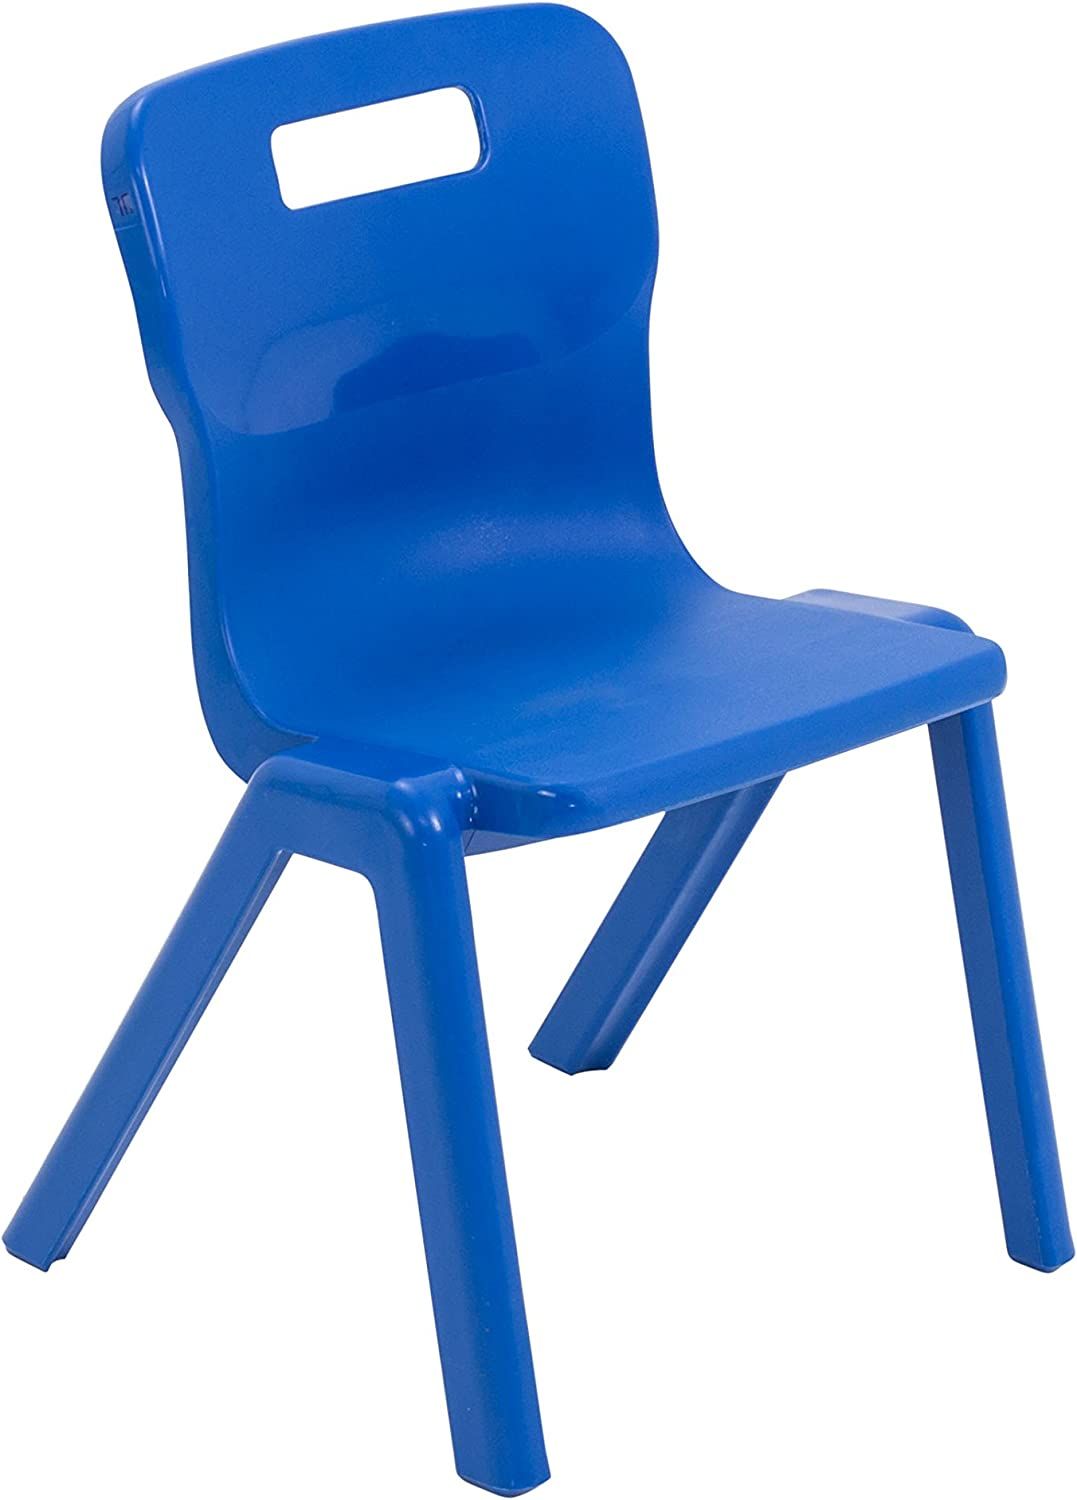 Blue Ages 3-5 Years Size 2 Pack of 2 Titan One Piece Classroom Chair Plastic